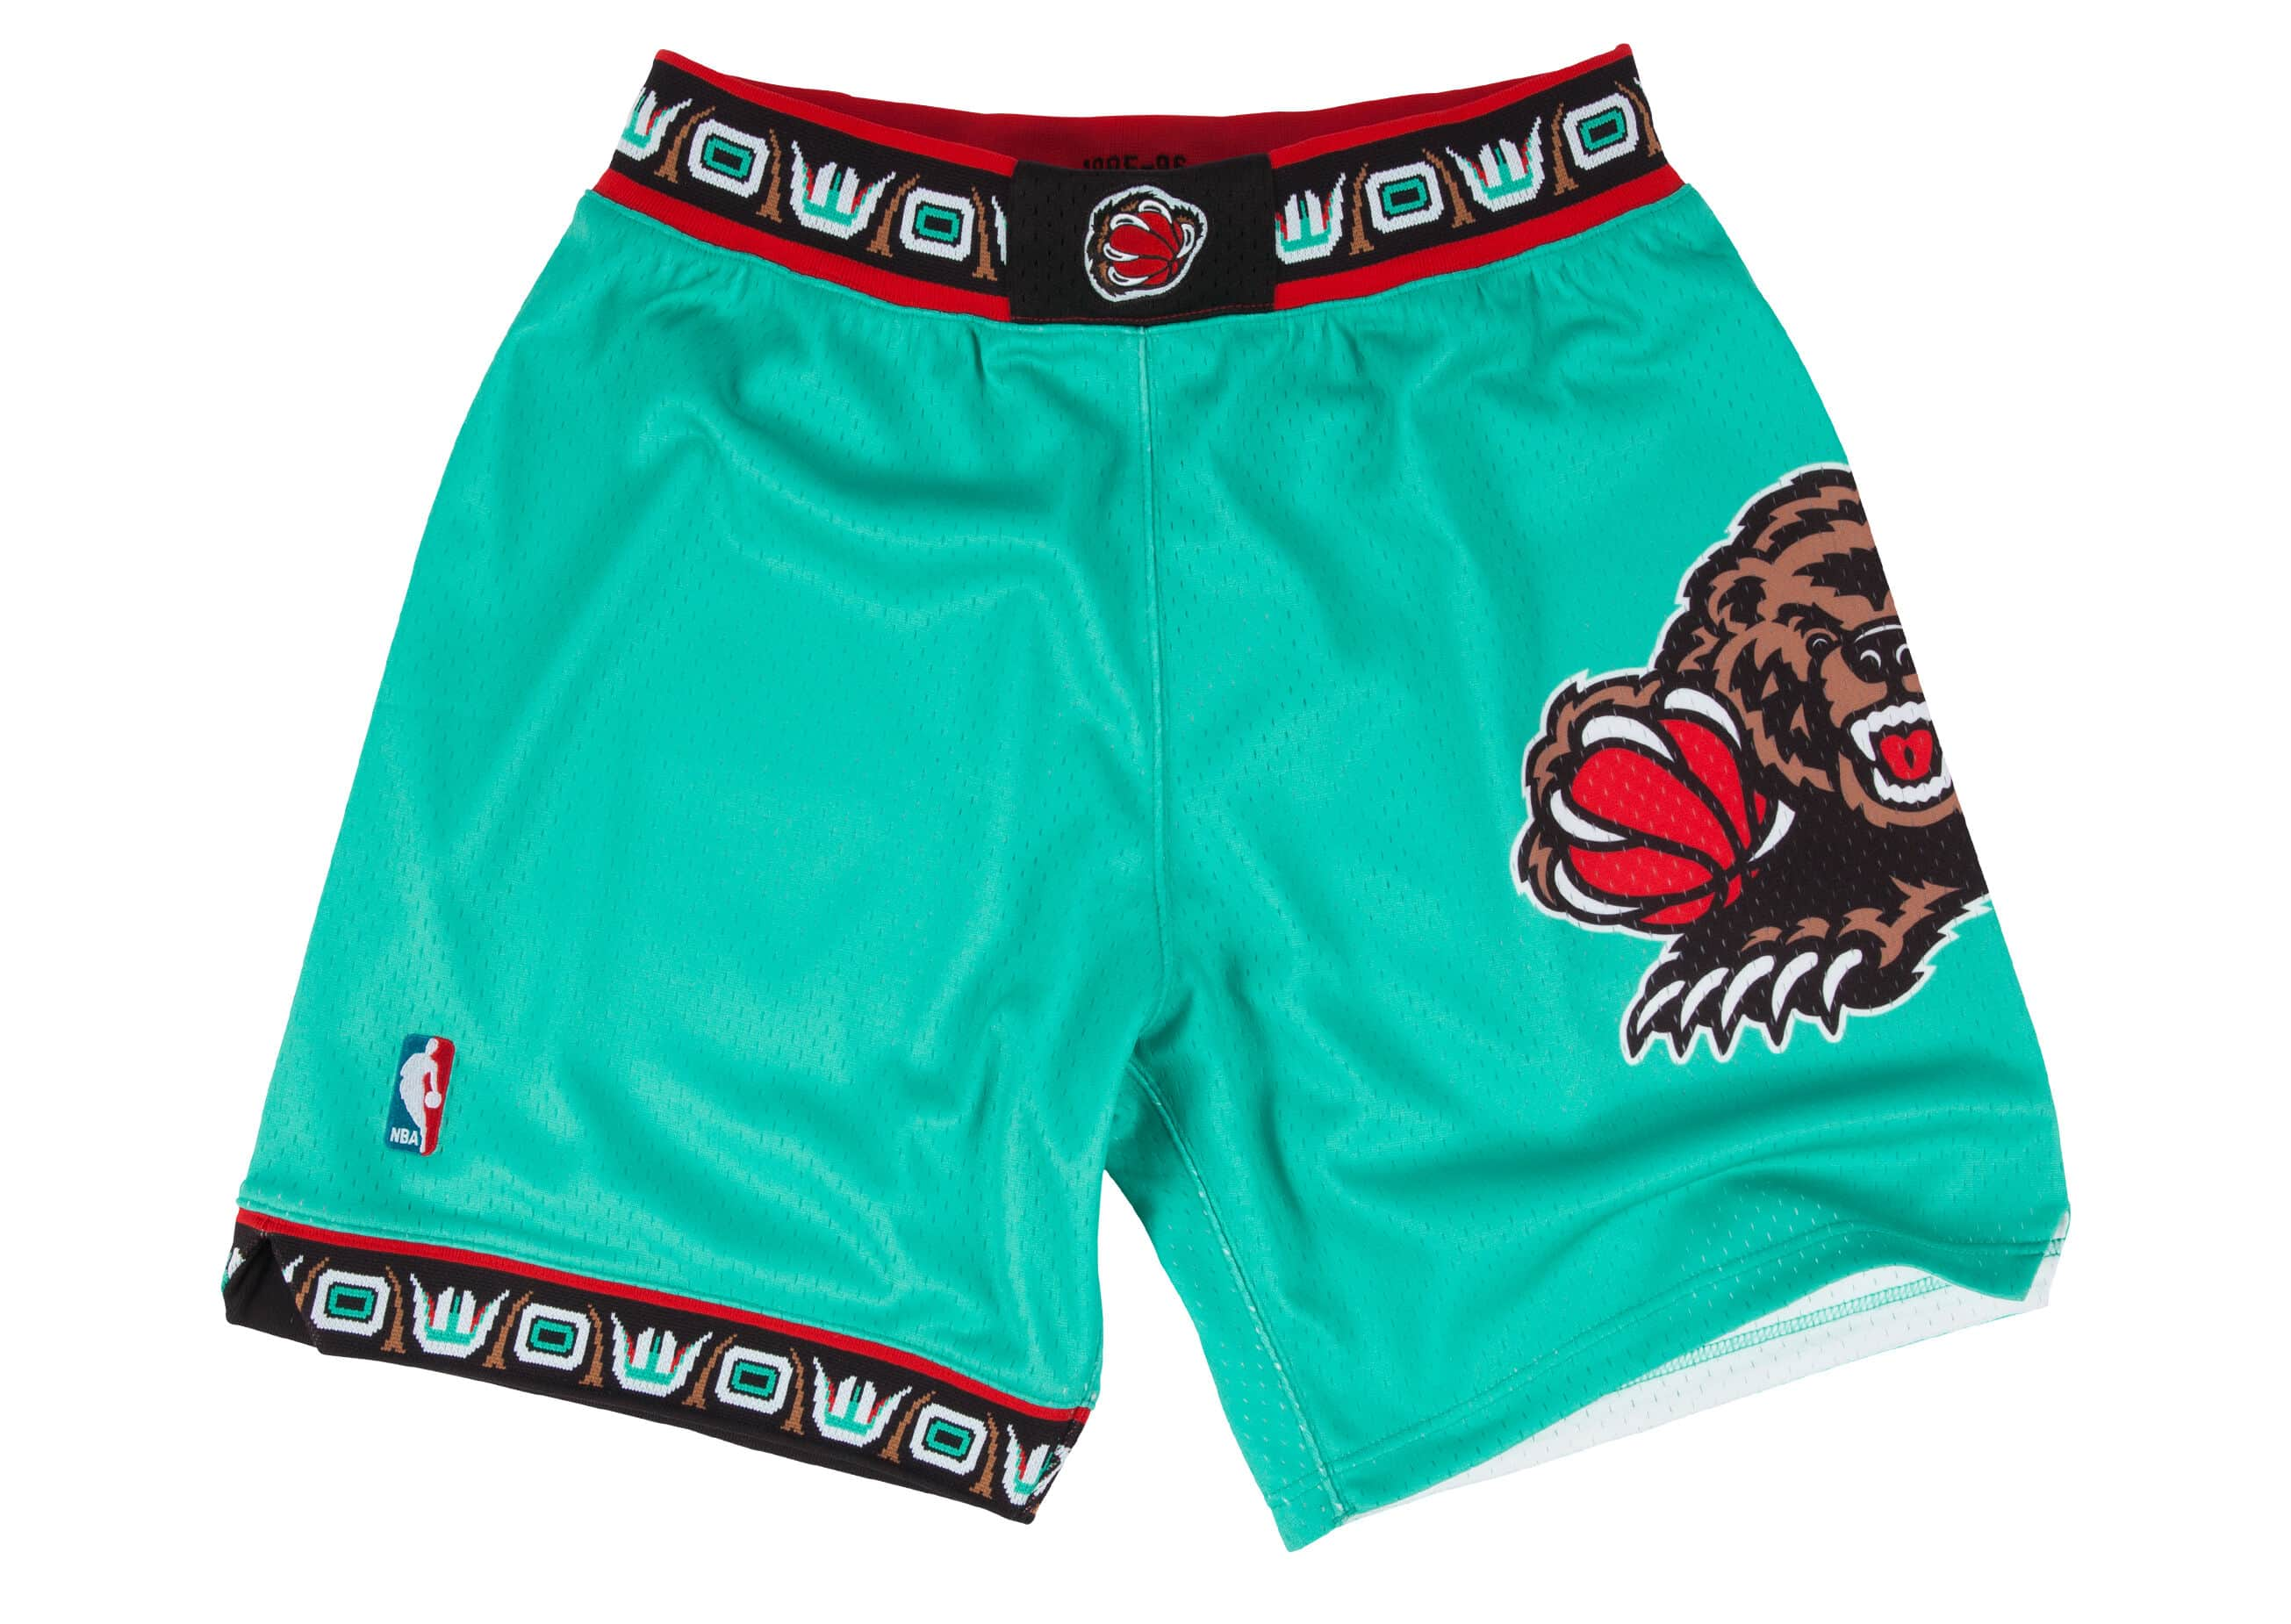 1995-96 Authentic Shorts Vancouver Grizzlies